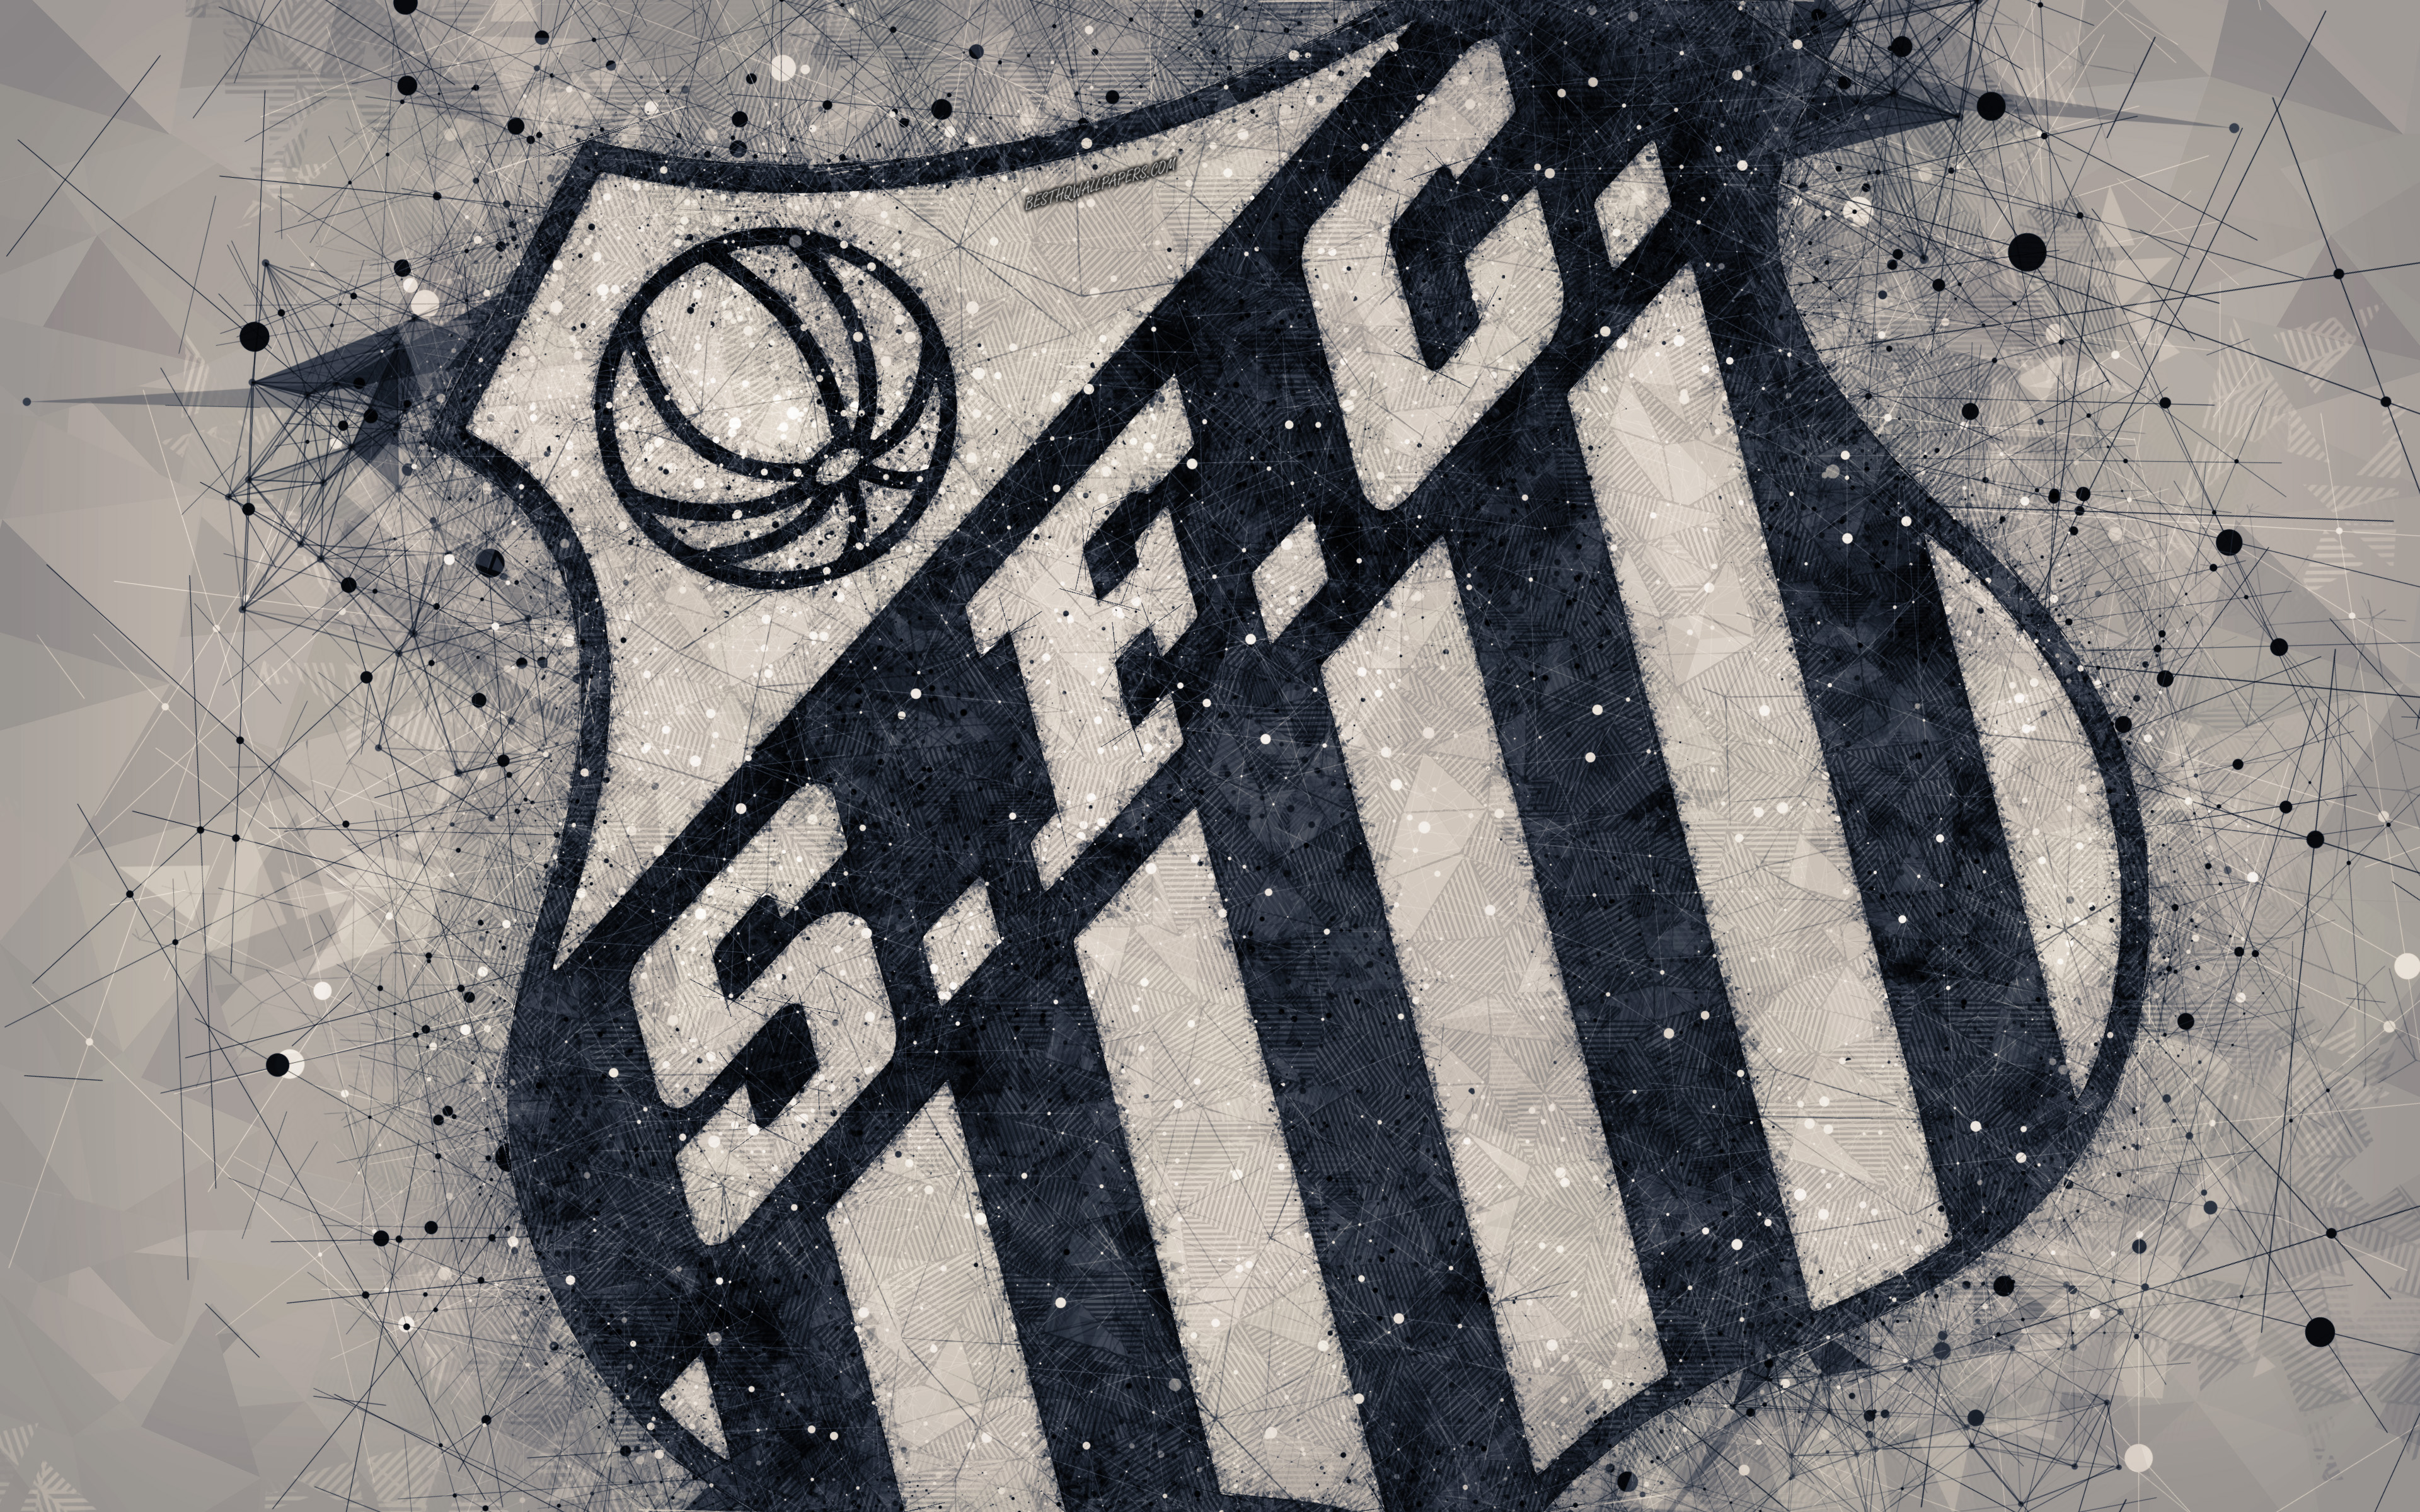 Download wallpapers Santos FC 4k creative geometric art logo 3840x2400